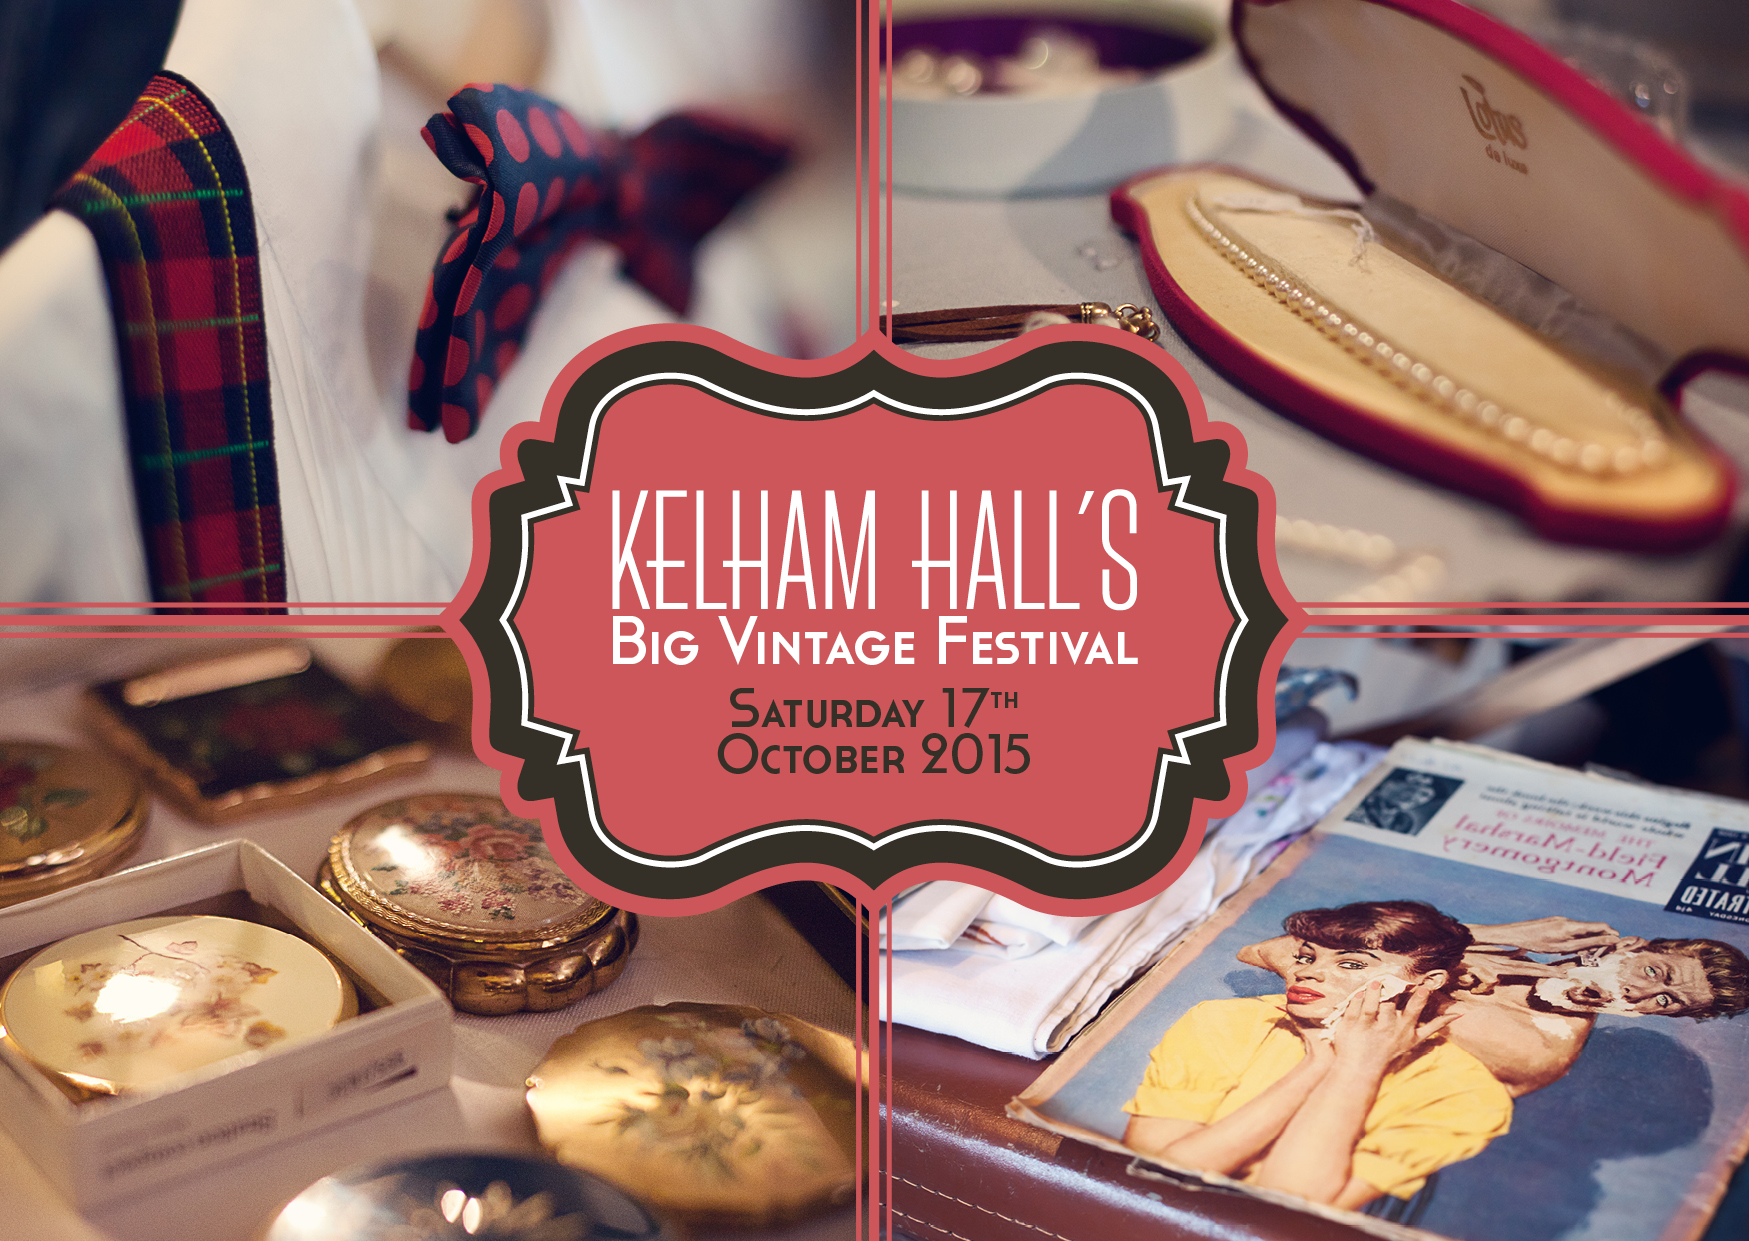 Win Tickets to Kelham Hall's Big Vintage Festival